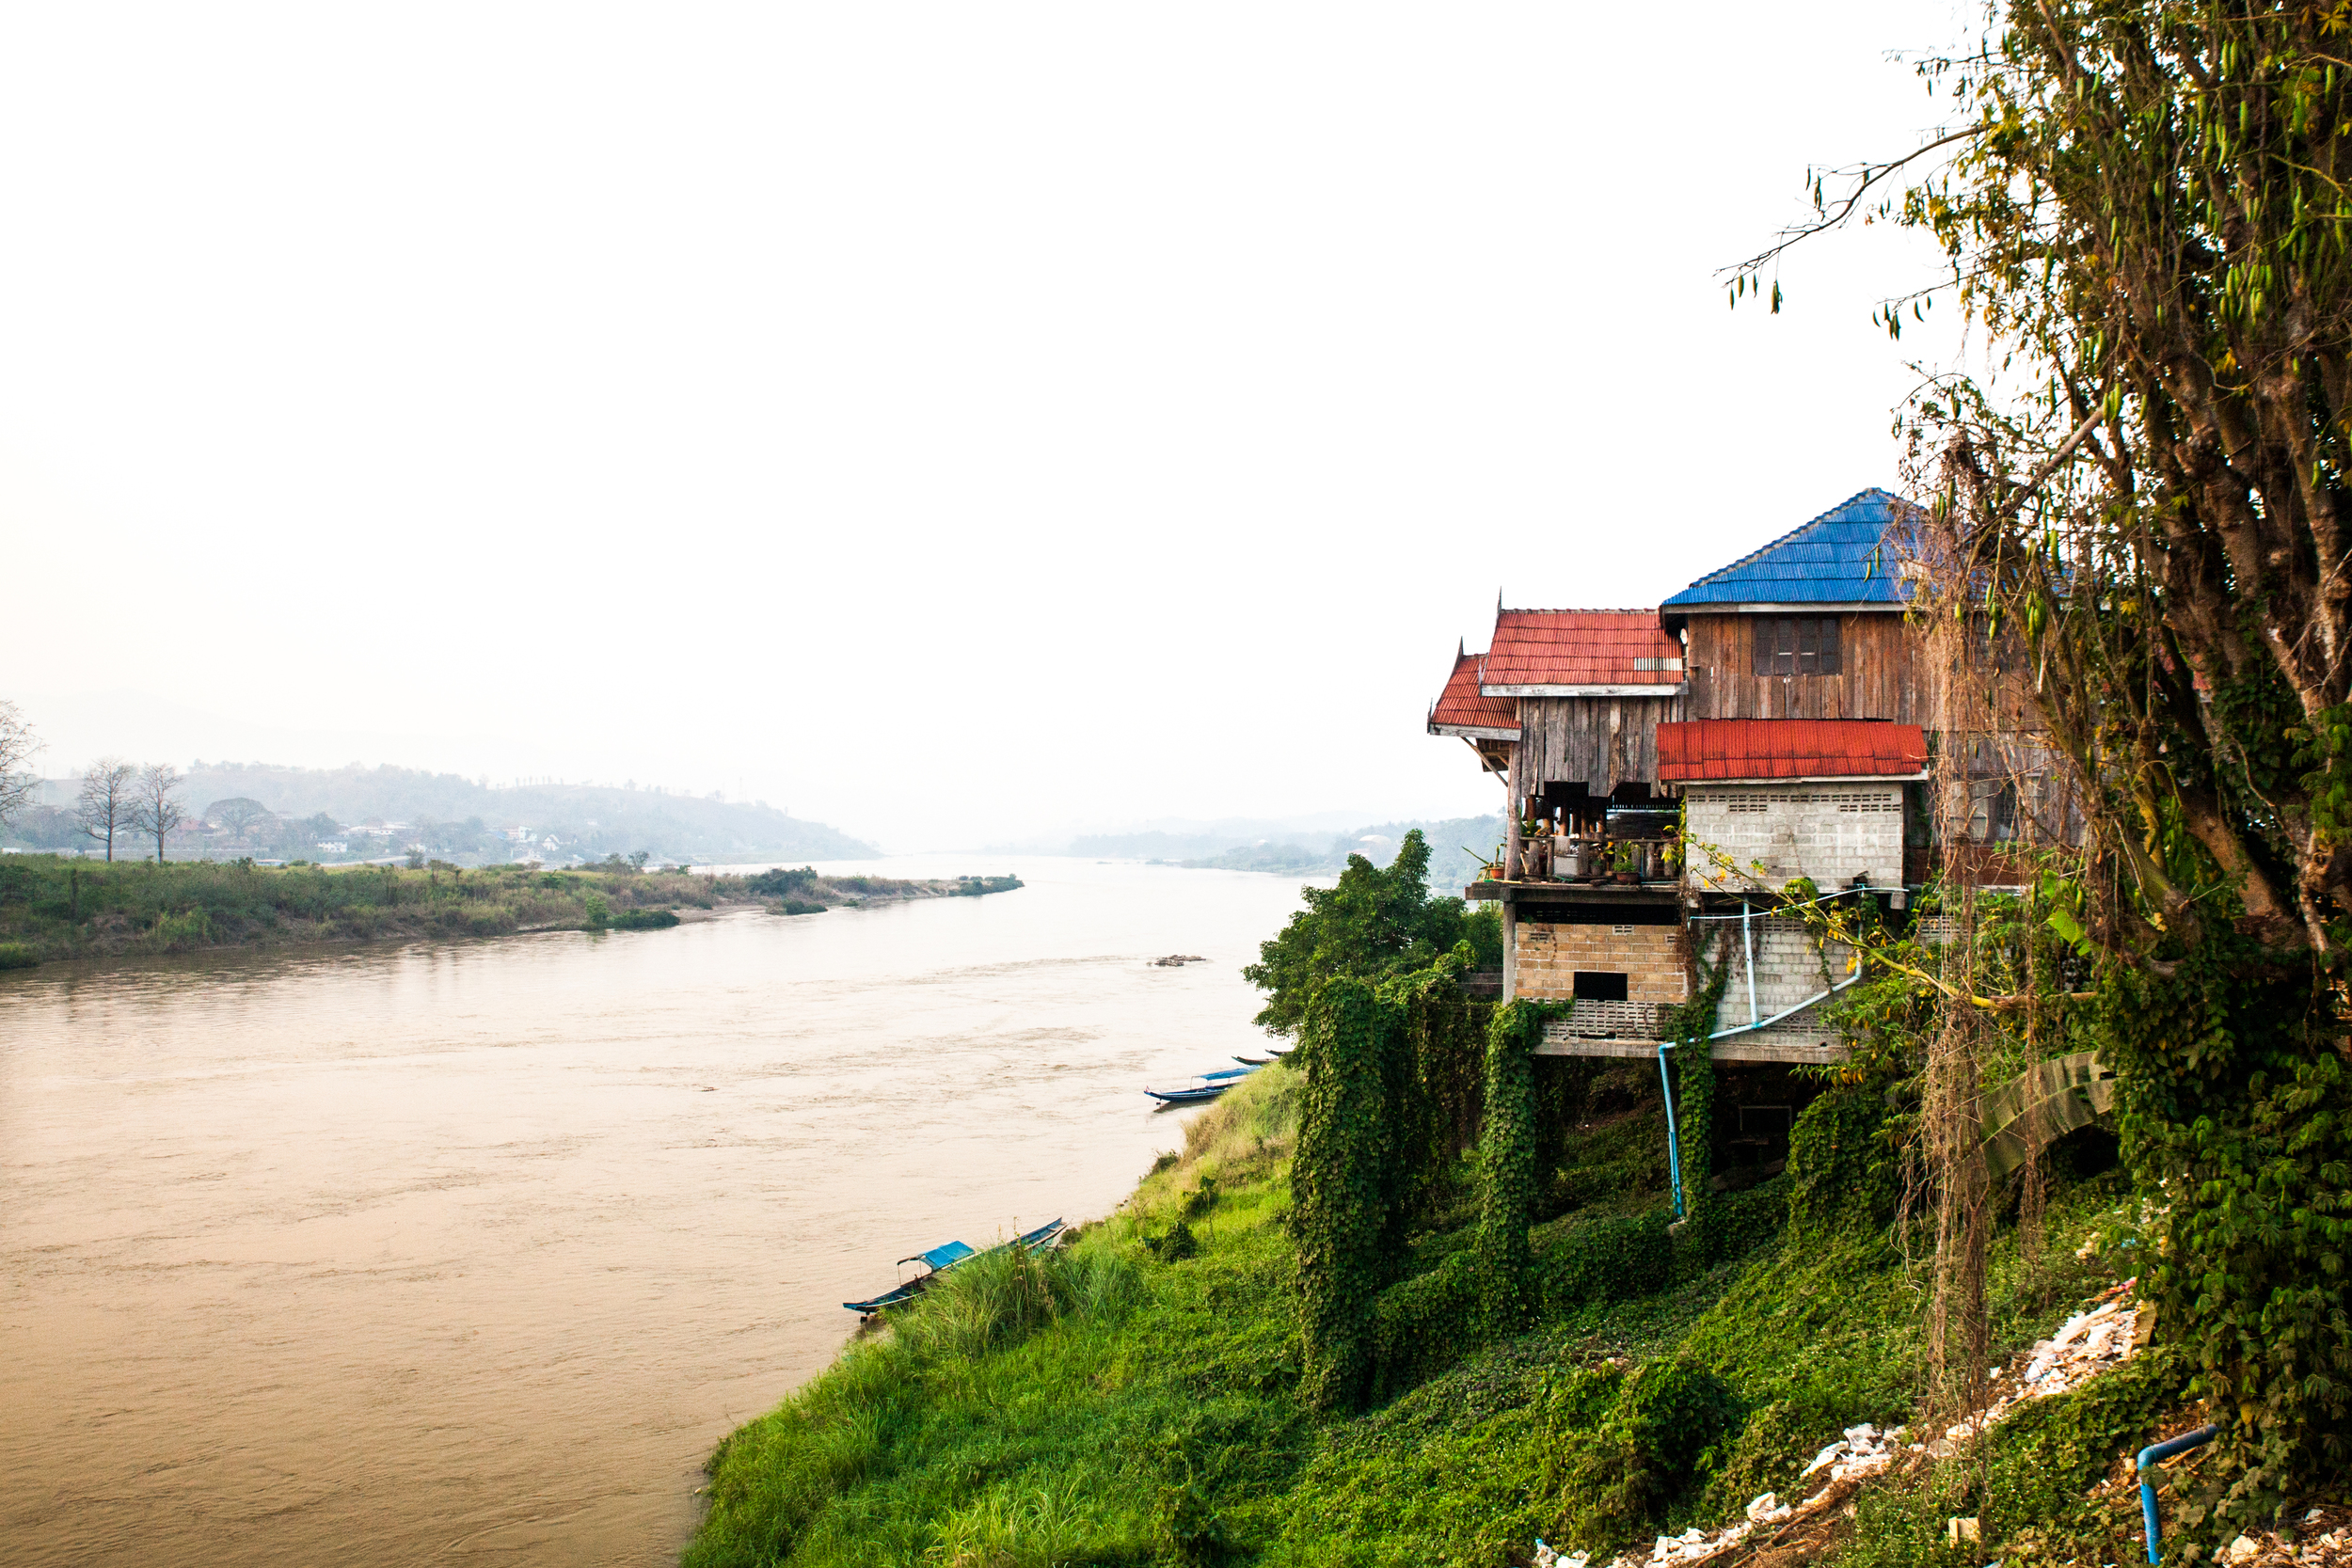 A view from the tavern, looking at a neighboring tavern.  Below is the Mekong river, the opposing bank is Thailand.